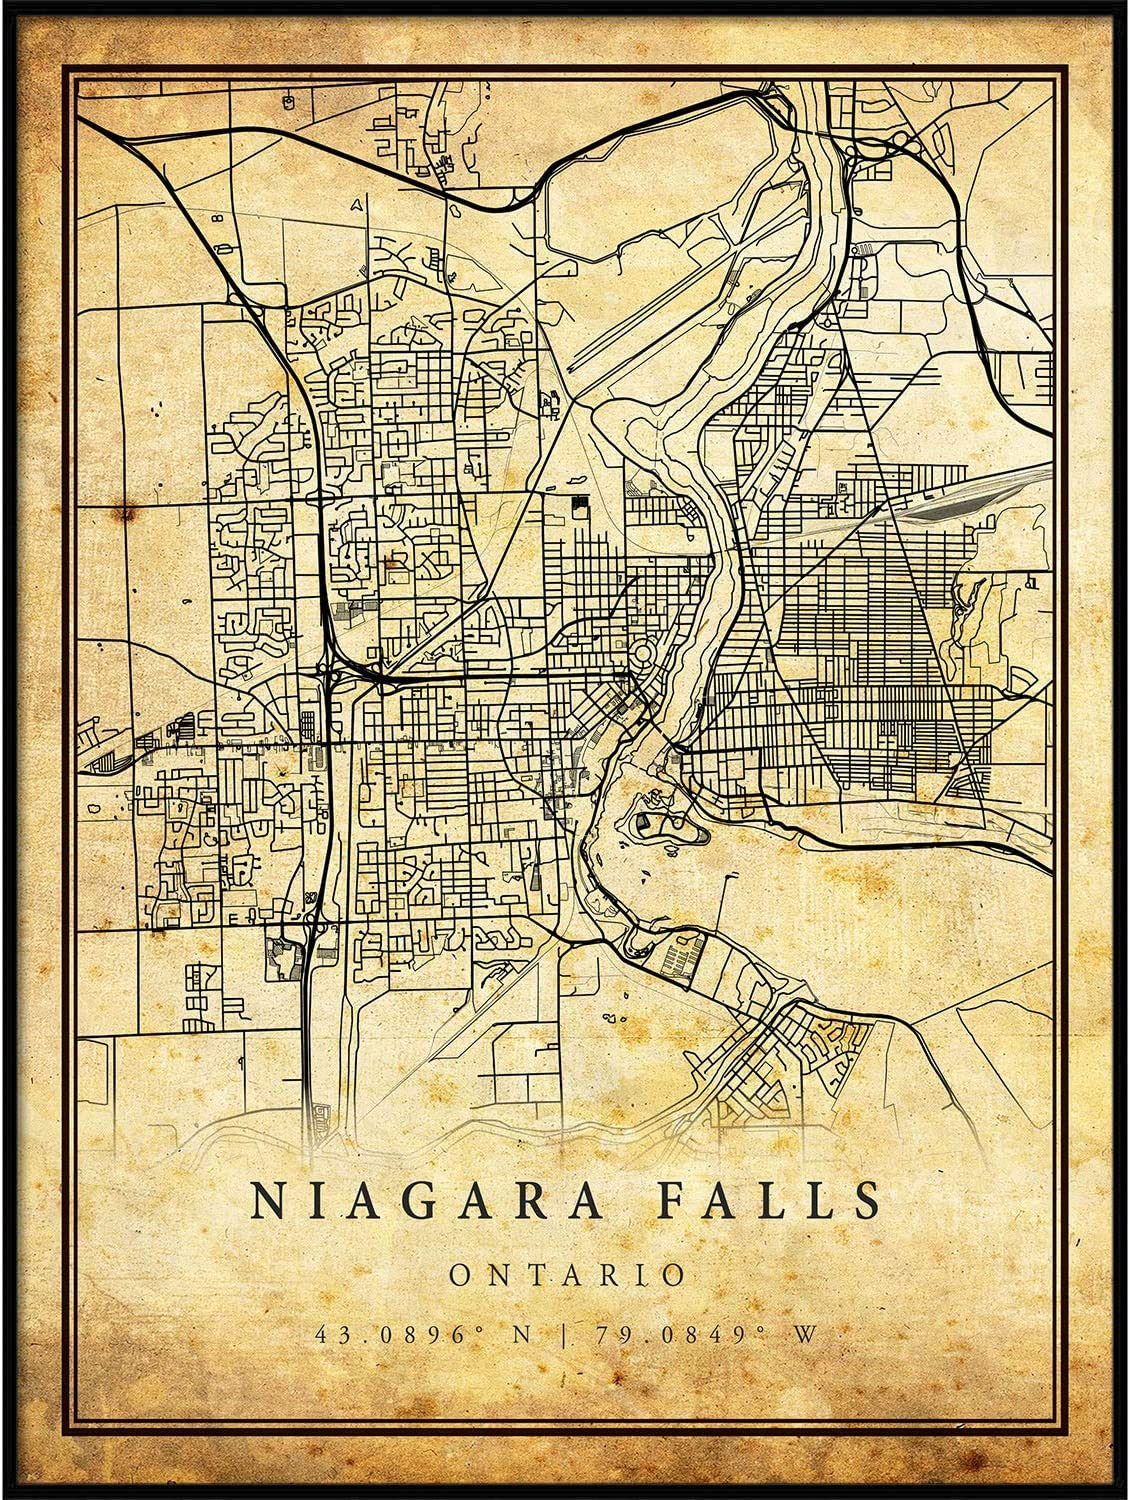 Niagara Falls map Vintage Style Poster Print | Old City Artwork Prints | Antique Style Home Decor | Ontario Wall Art Gift | map Posters 11x14